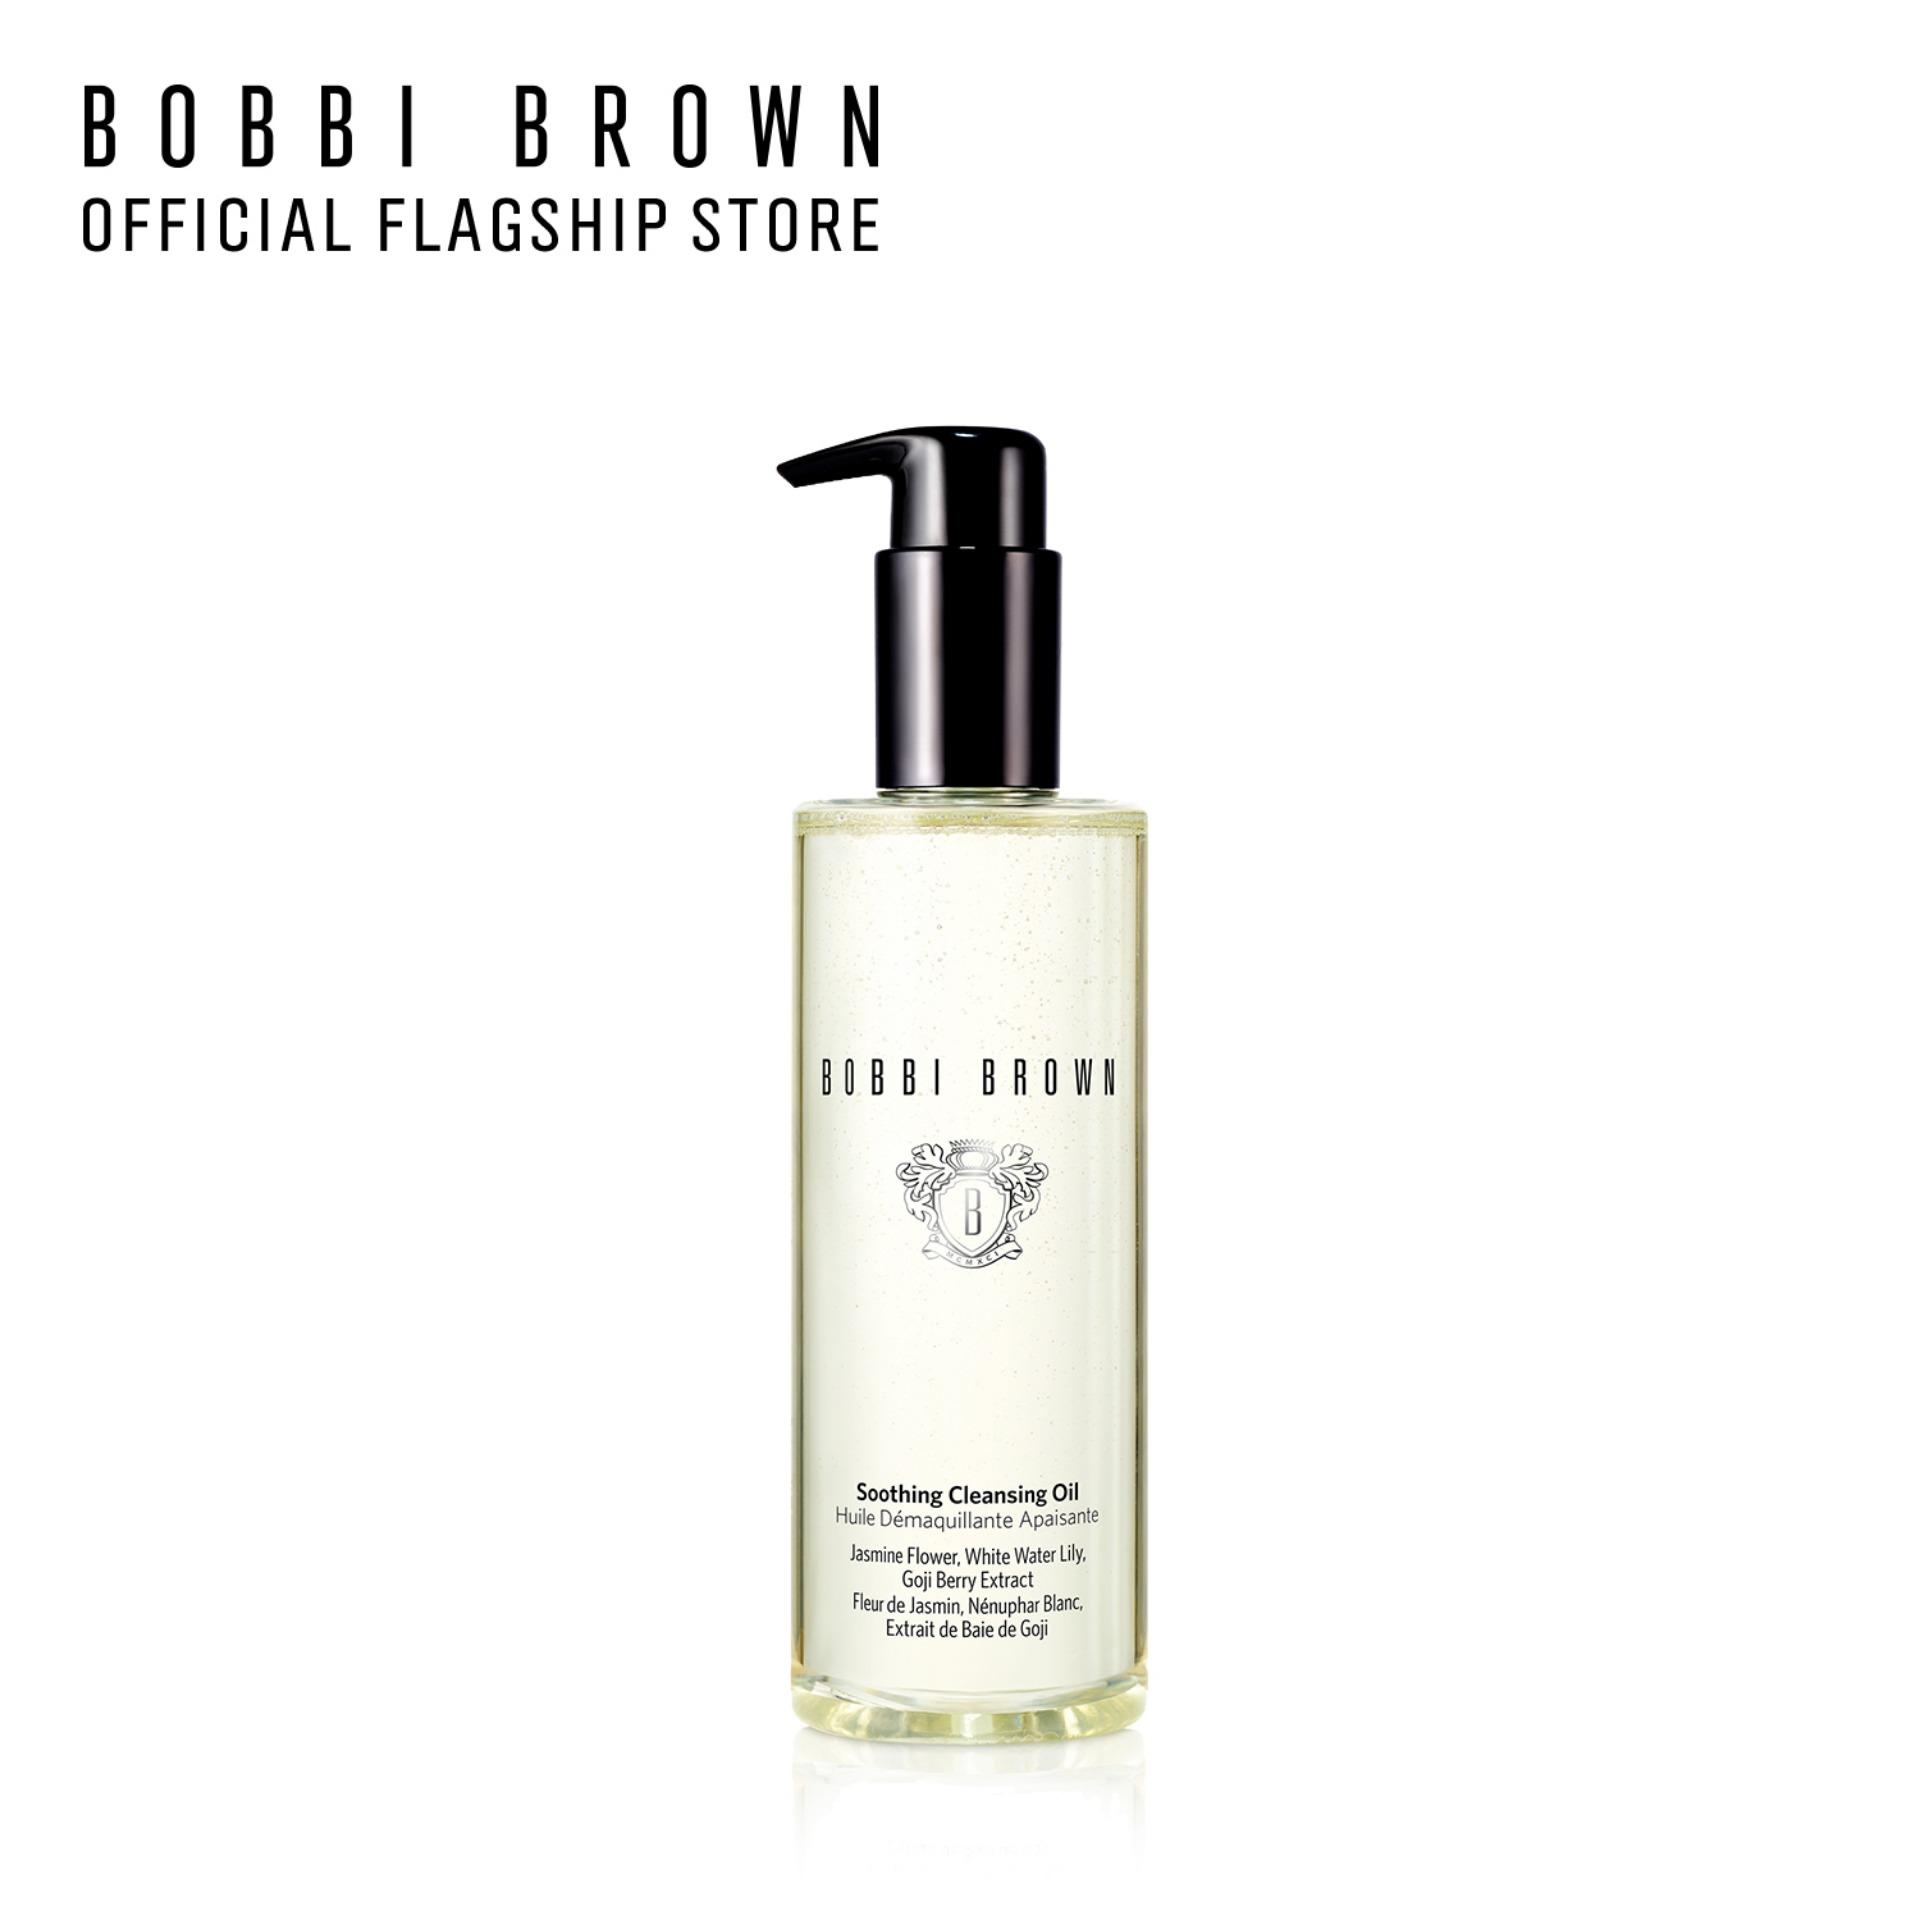 Dầu tẩy trang Bobbi Brown Soothing Cleansing Oil 200ml